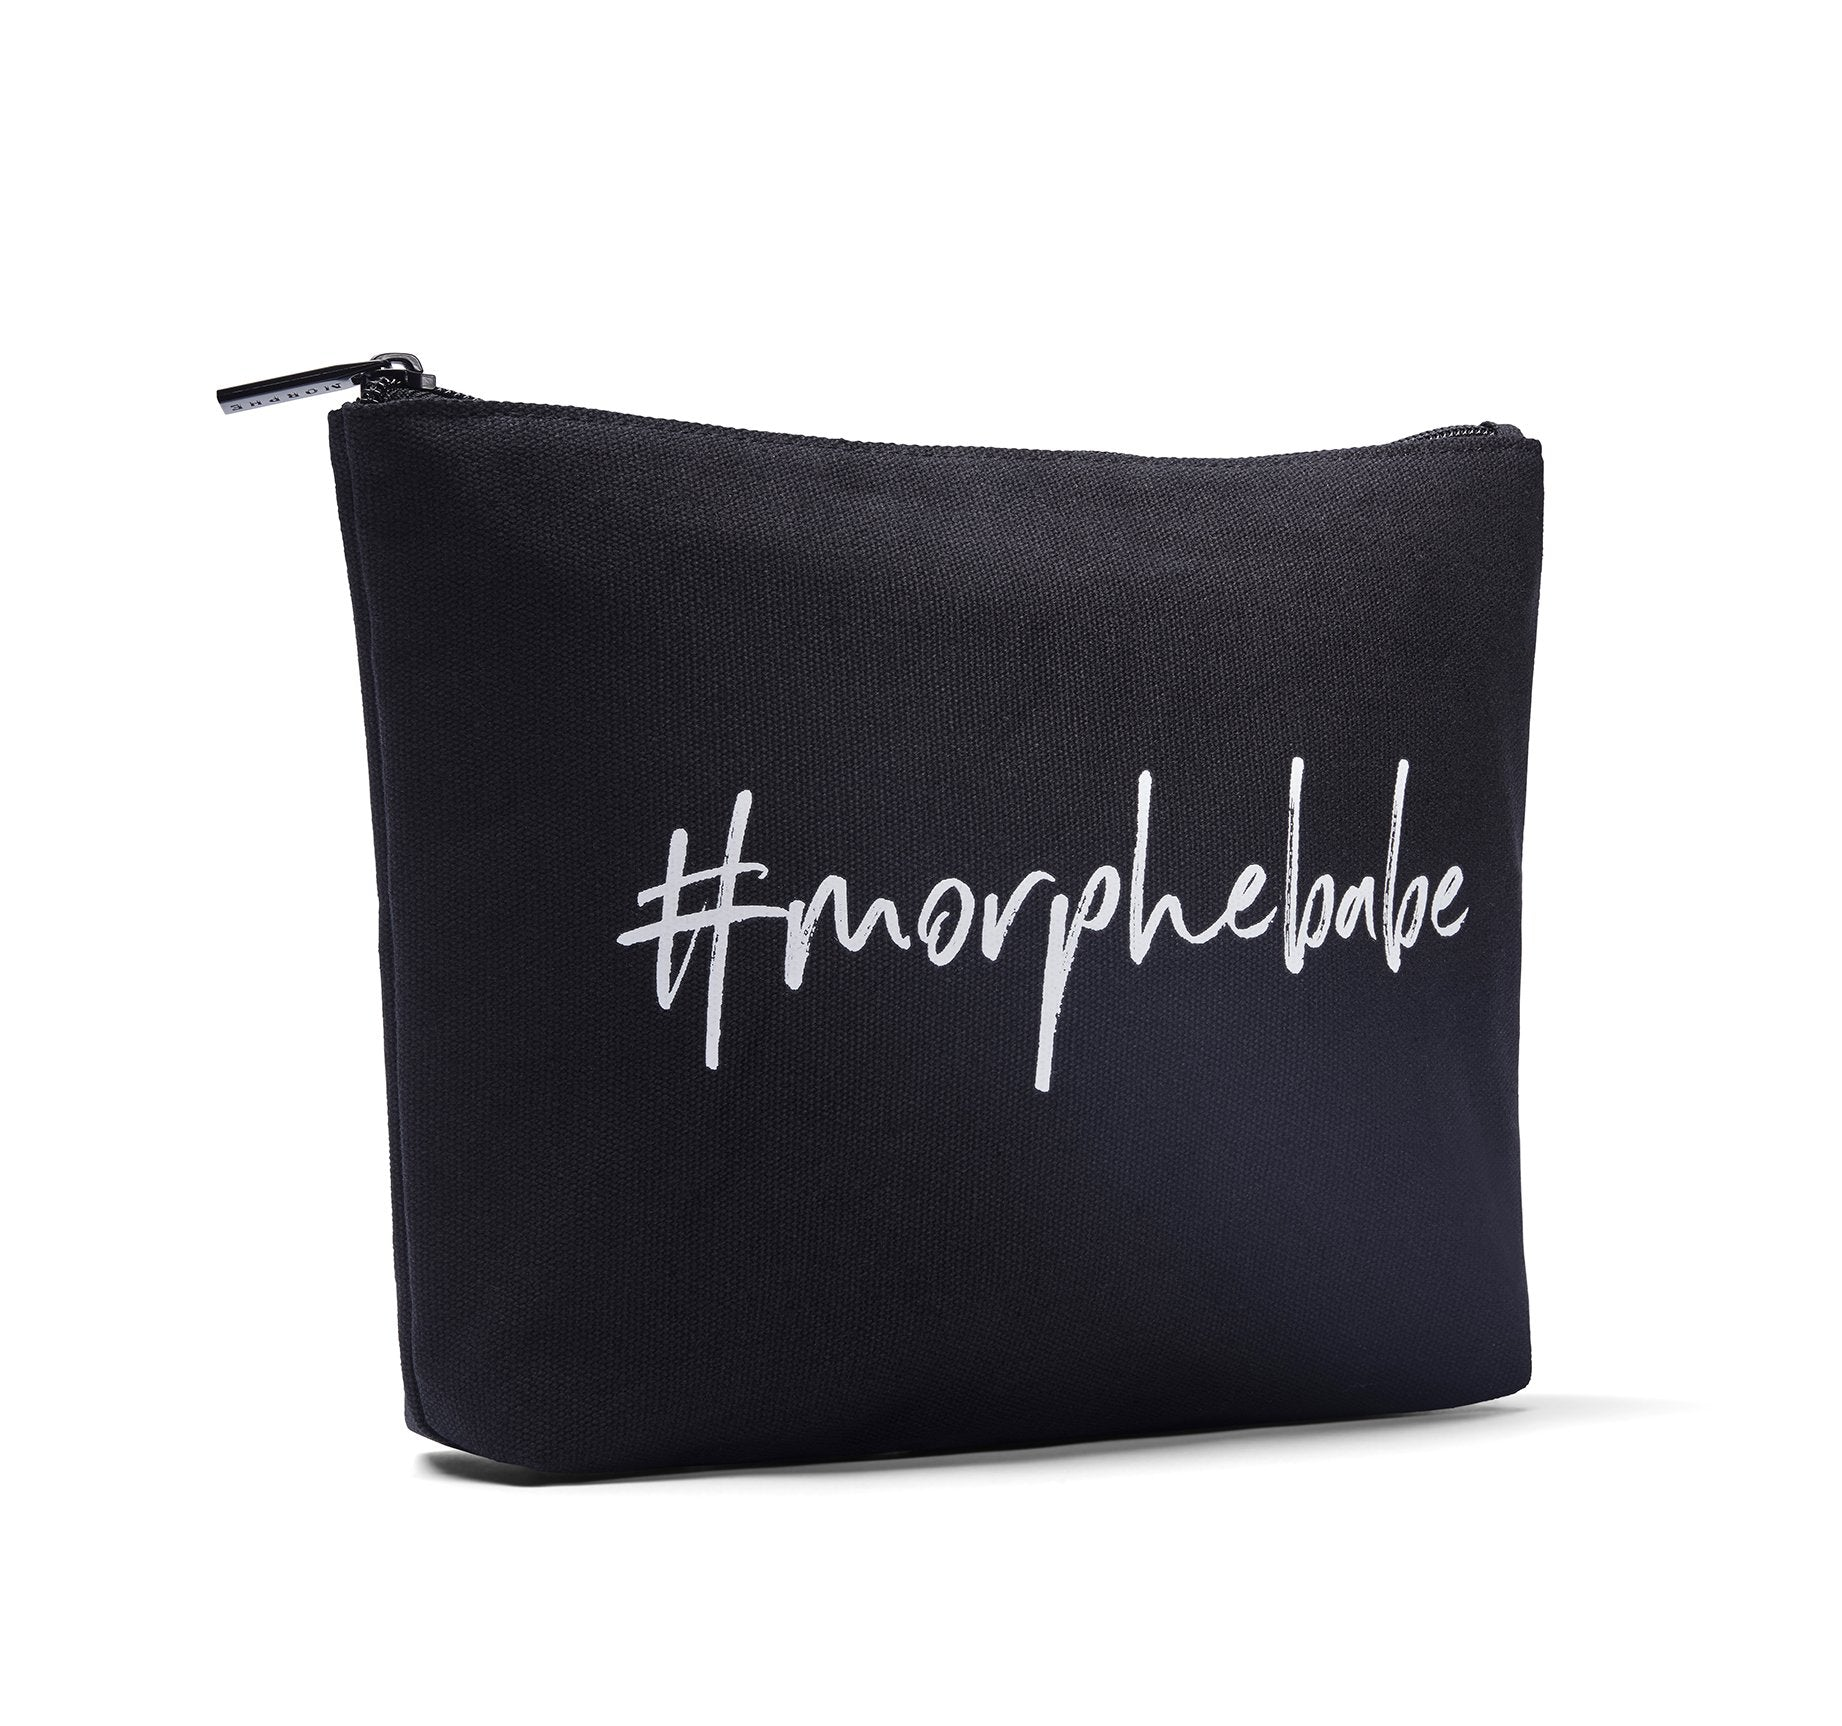 #MORPHEBABE MAKEUP BAG, view larger image